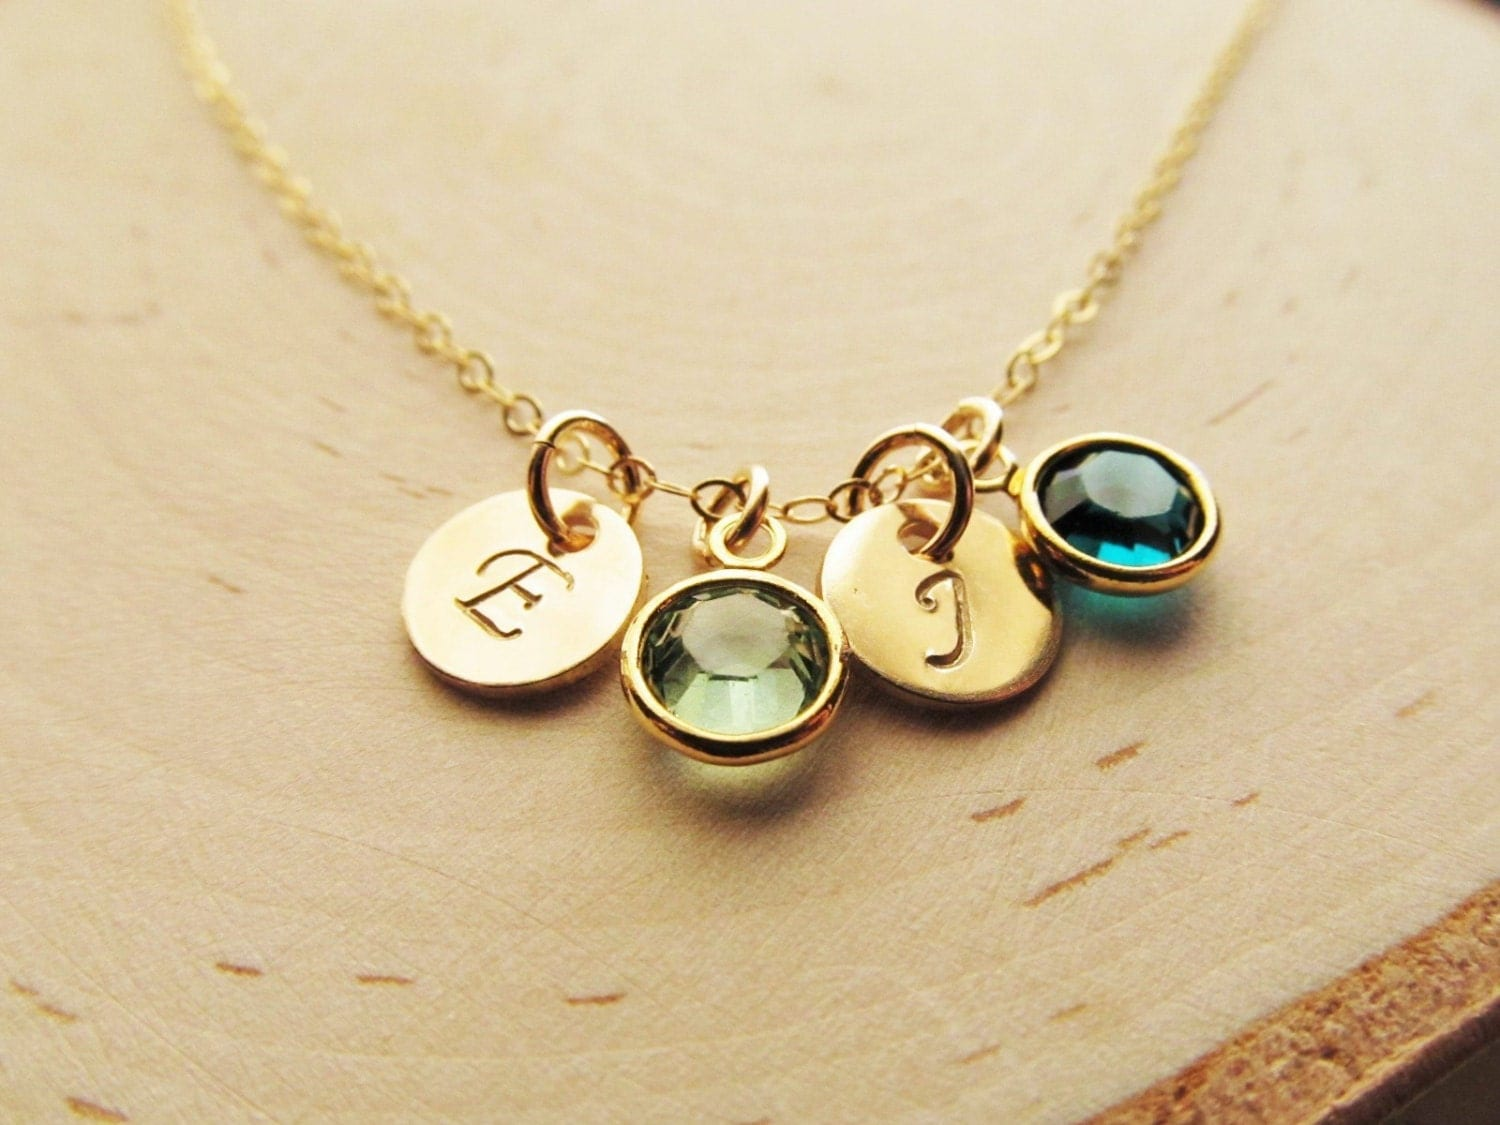 mothers birthstone necklace 14kt gold filled with initial. Black Bedroom Furniture Sets. Home Design Ideas